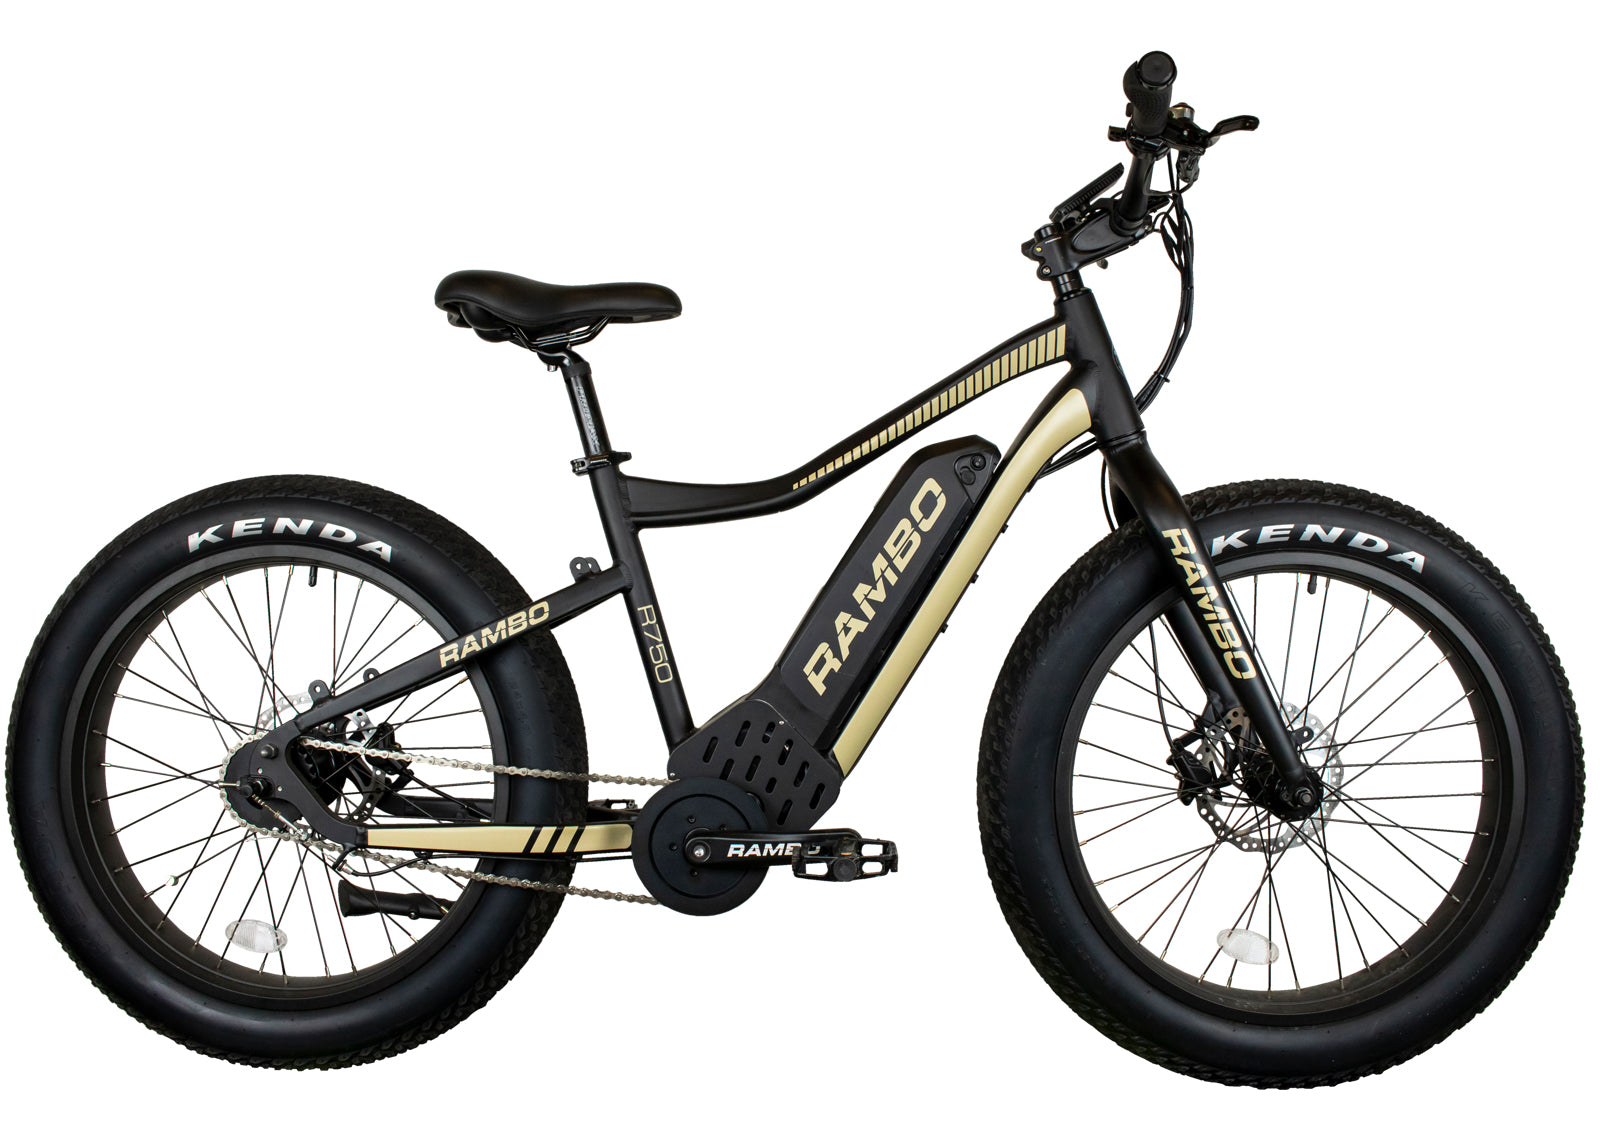 RAMBO RYDER 750W 24 MATTE BLACK AND TAN - Electric Bike Ridetique.com